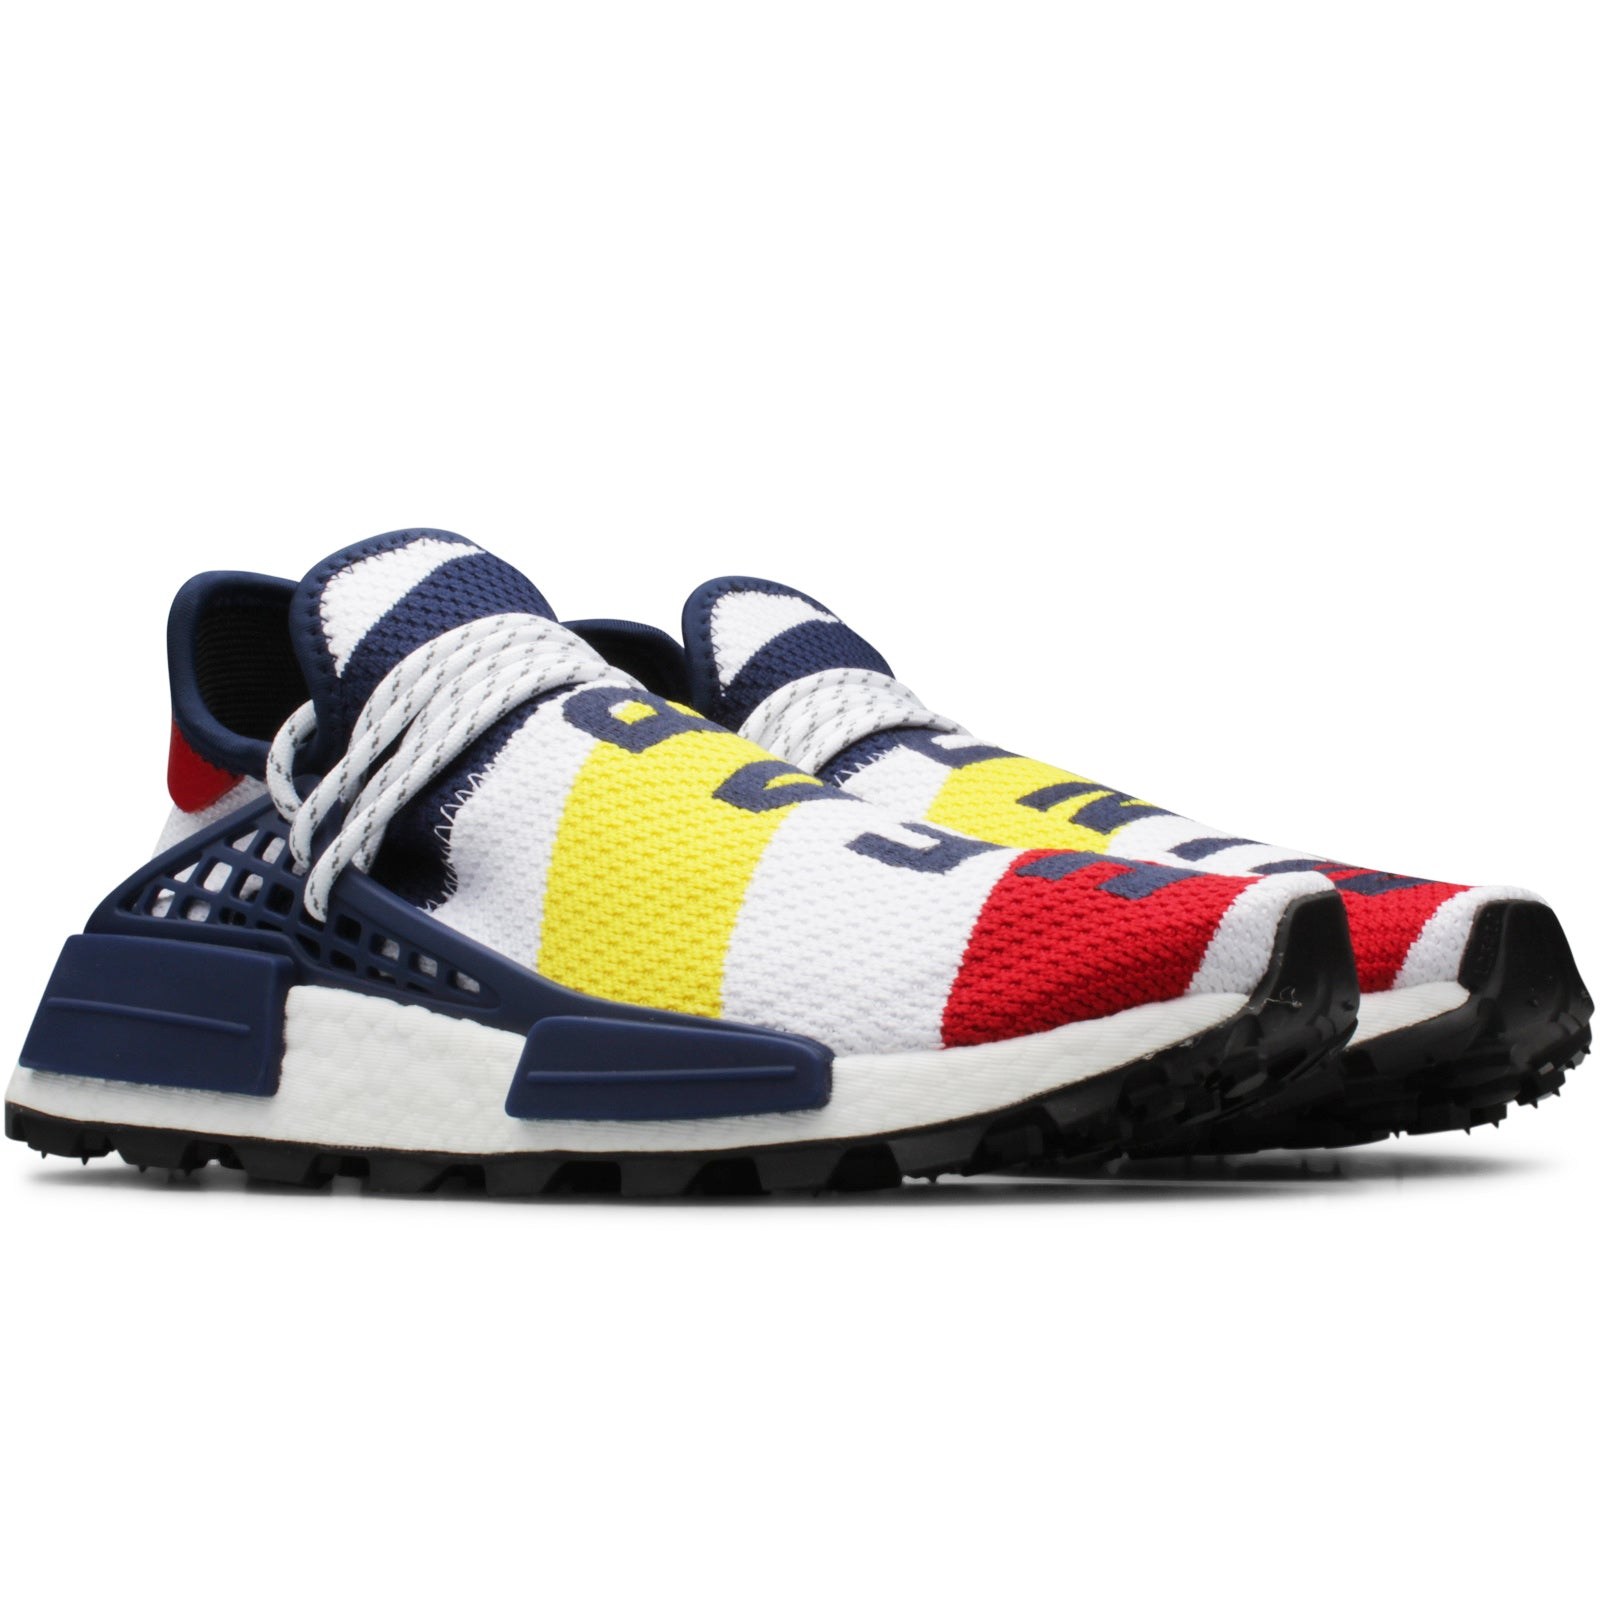 2934ac00e Stitched within the Hu NMD s instantly recognisable primeknit upper are  iconic Billionaire Boys Club logo marks